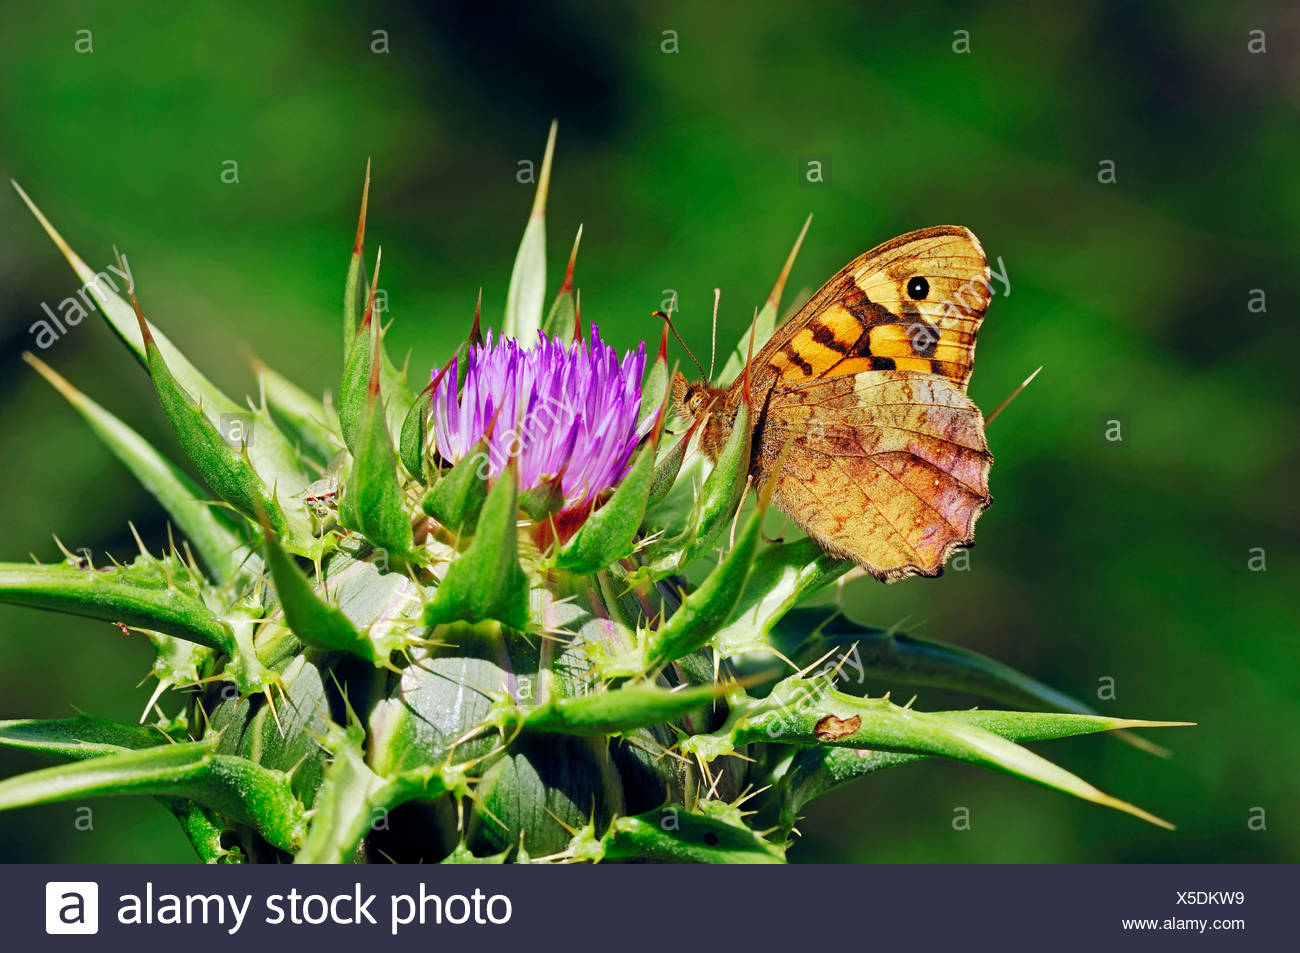 Speckled Wood Butterfly (Pararge aegeria aegeria) on Blessed Milk Thistle, Saint Mary's Thistle, or Scotch Thistle (Silybrum - Stock Image